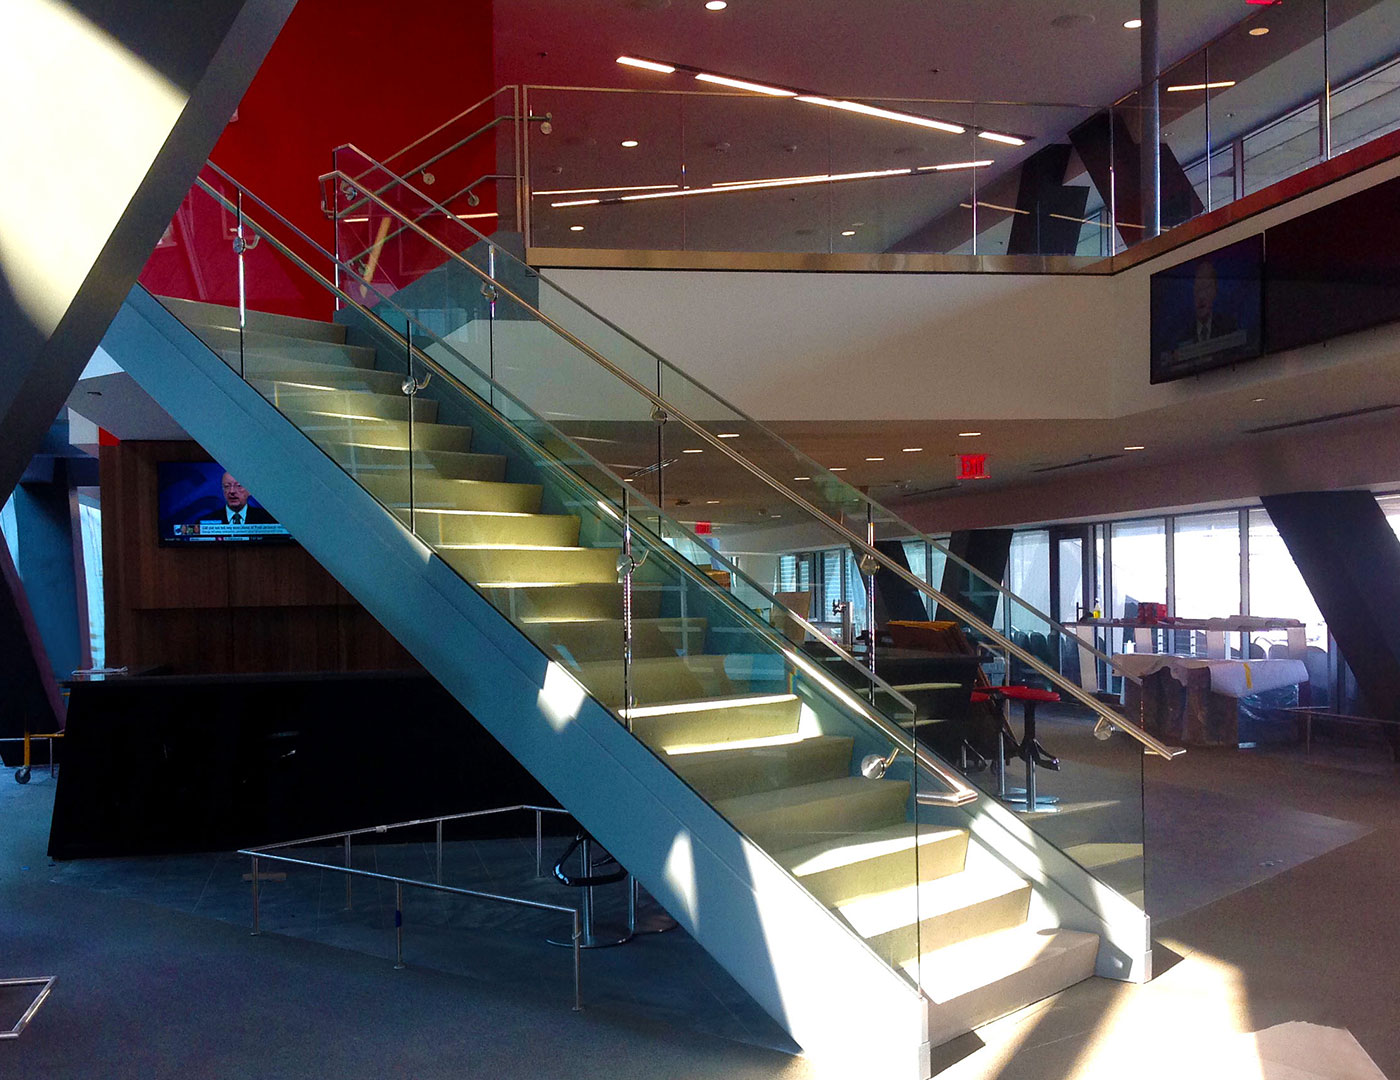 Glass railing was used on stairs and balcony